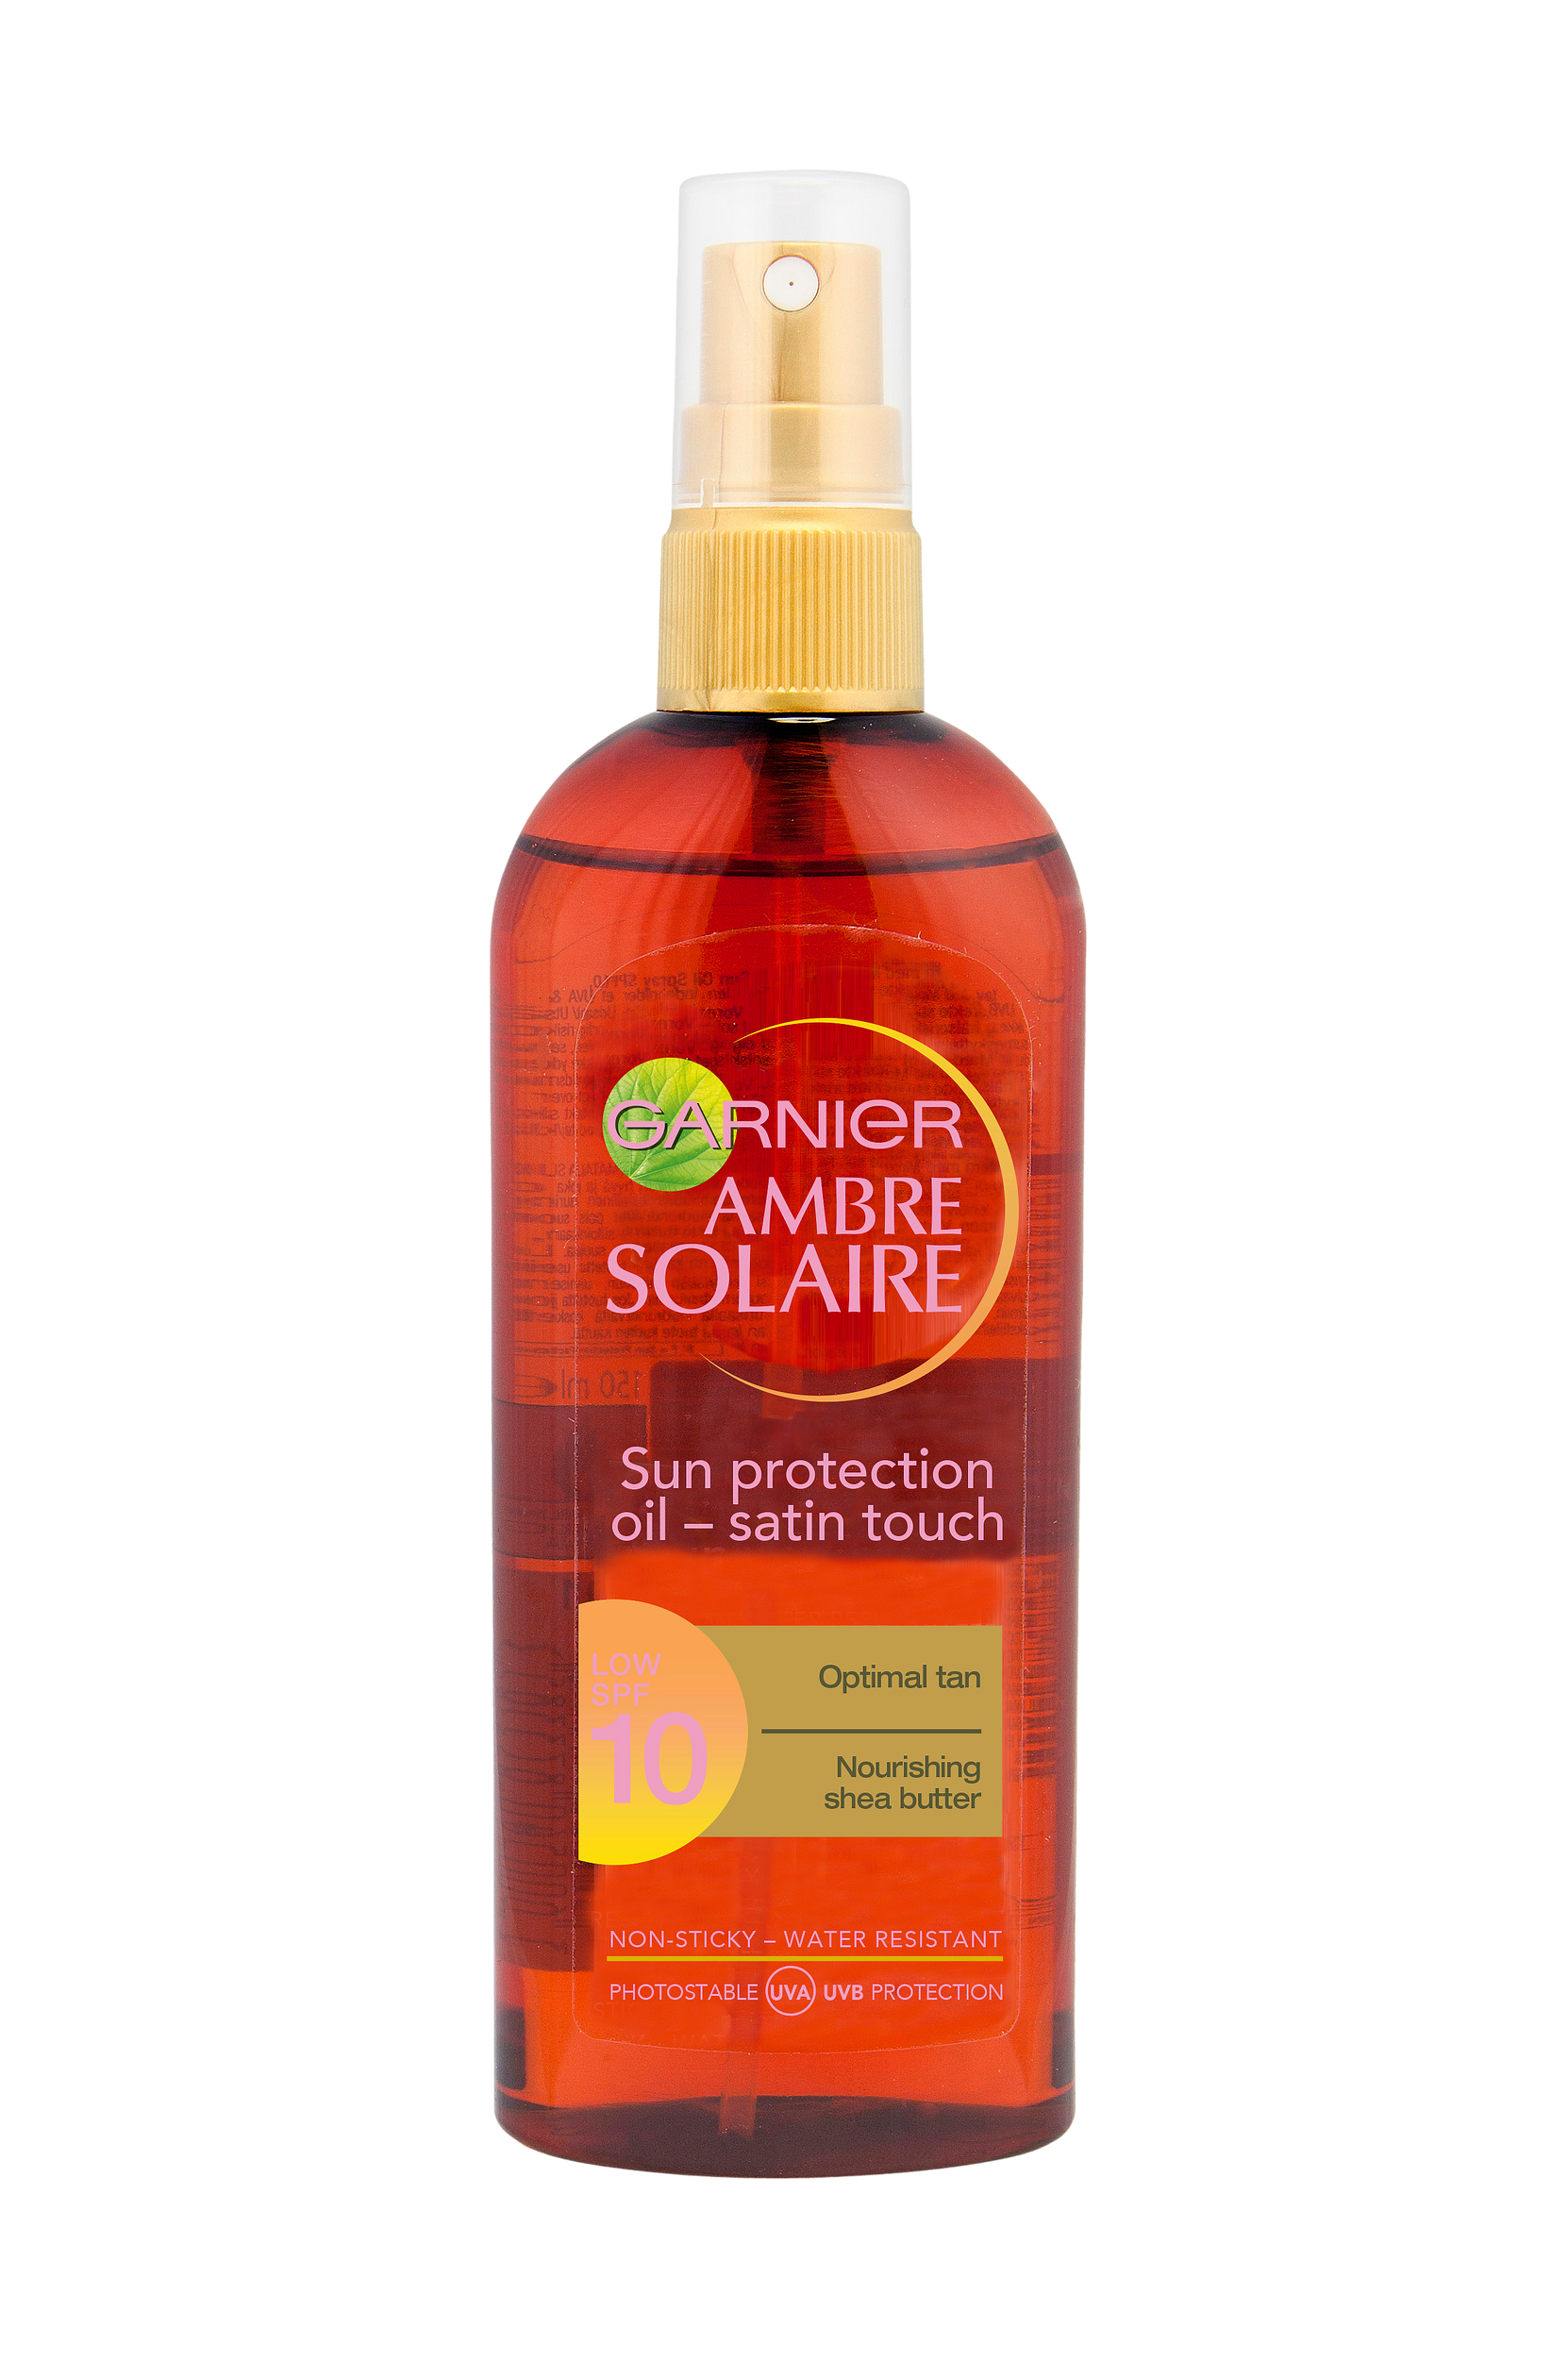 Ambre Solaire Oil Spray SPF 10